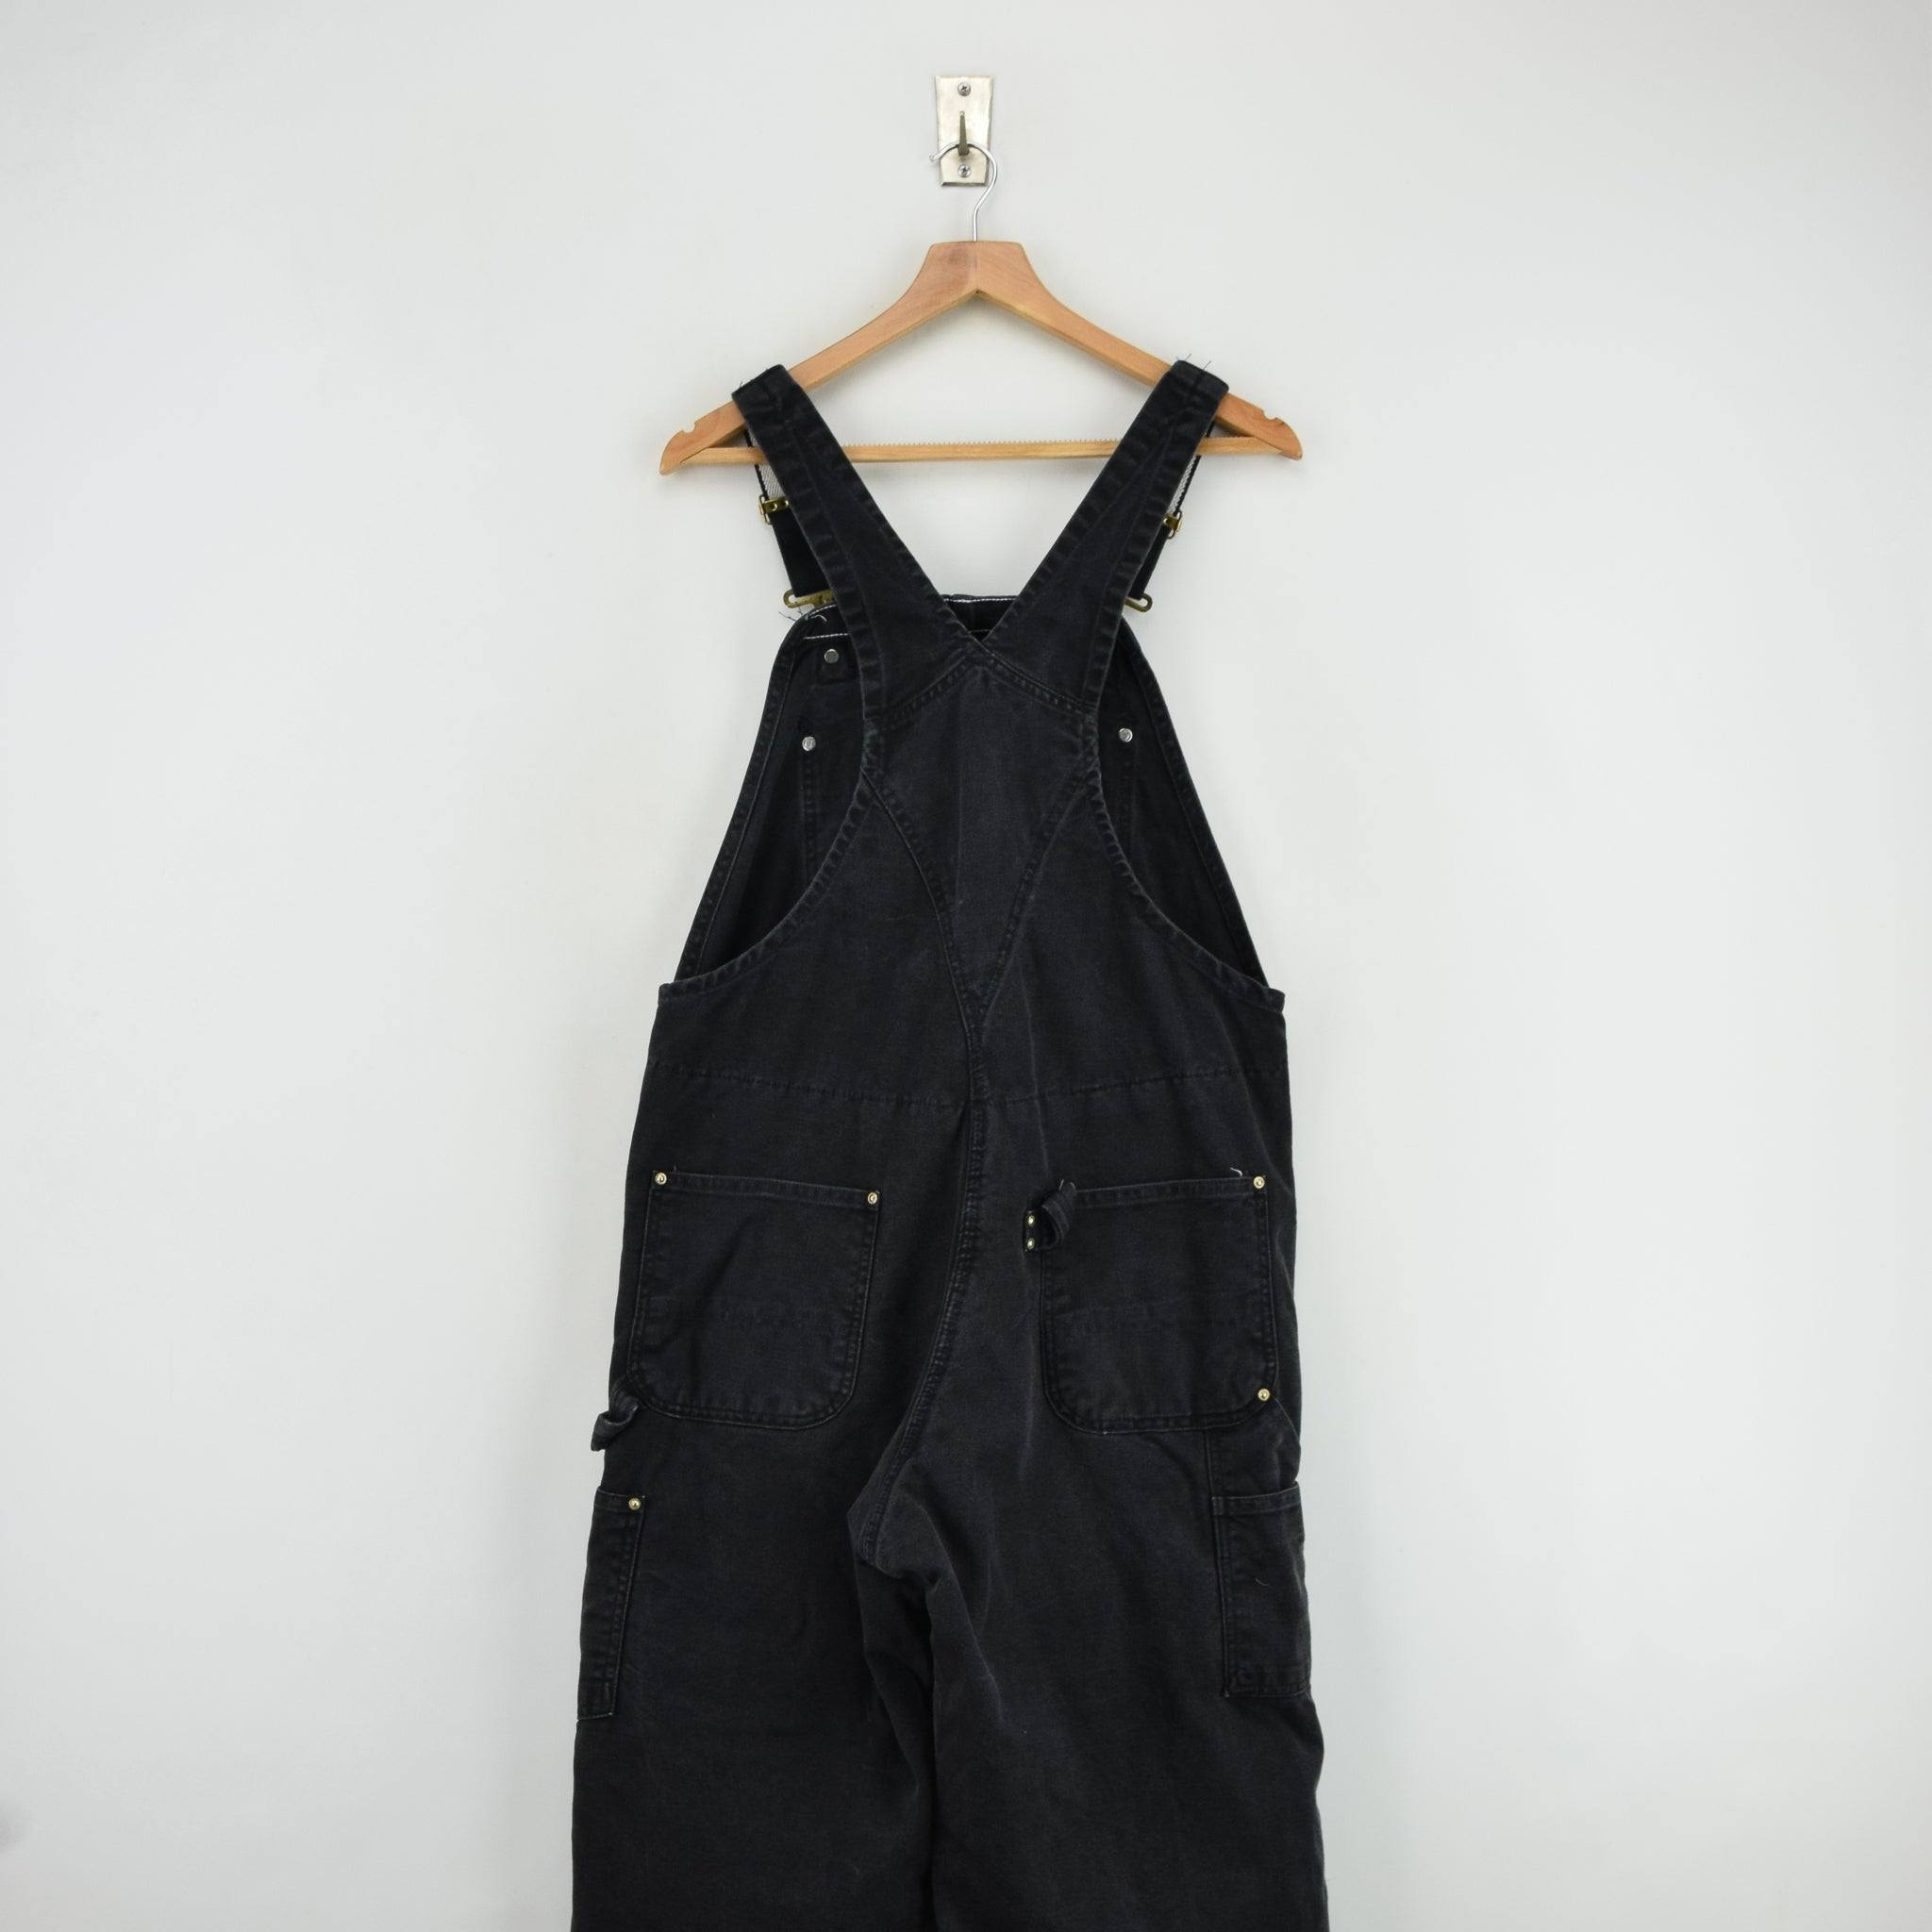 Vintage Carhartt Work Dungarees Black Duck Canvas Bib Overall Quilt Lined M back